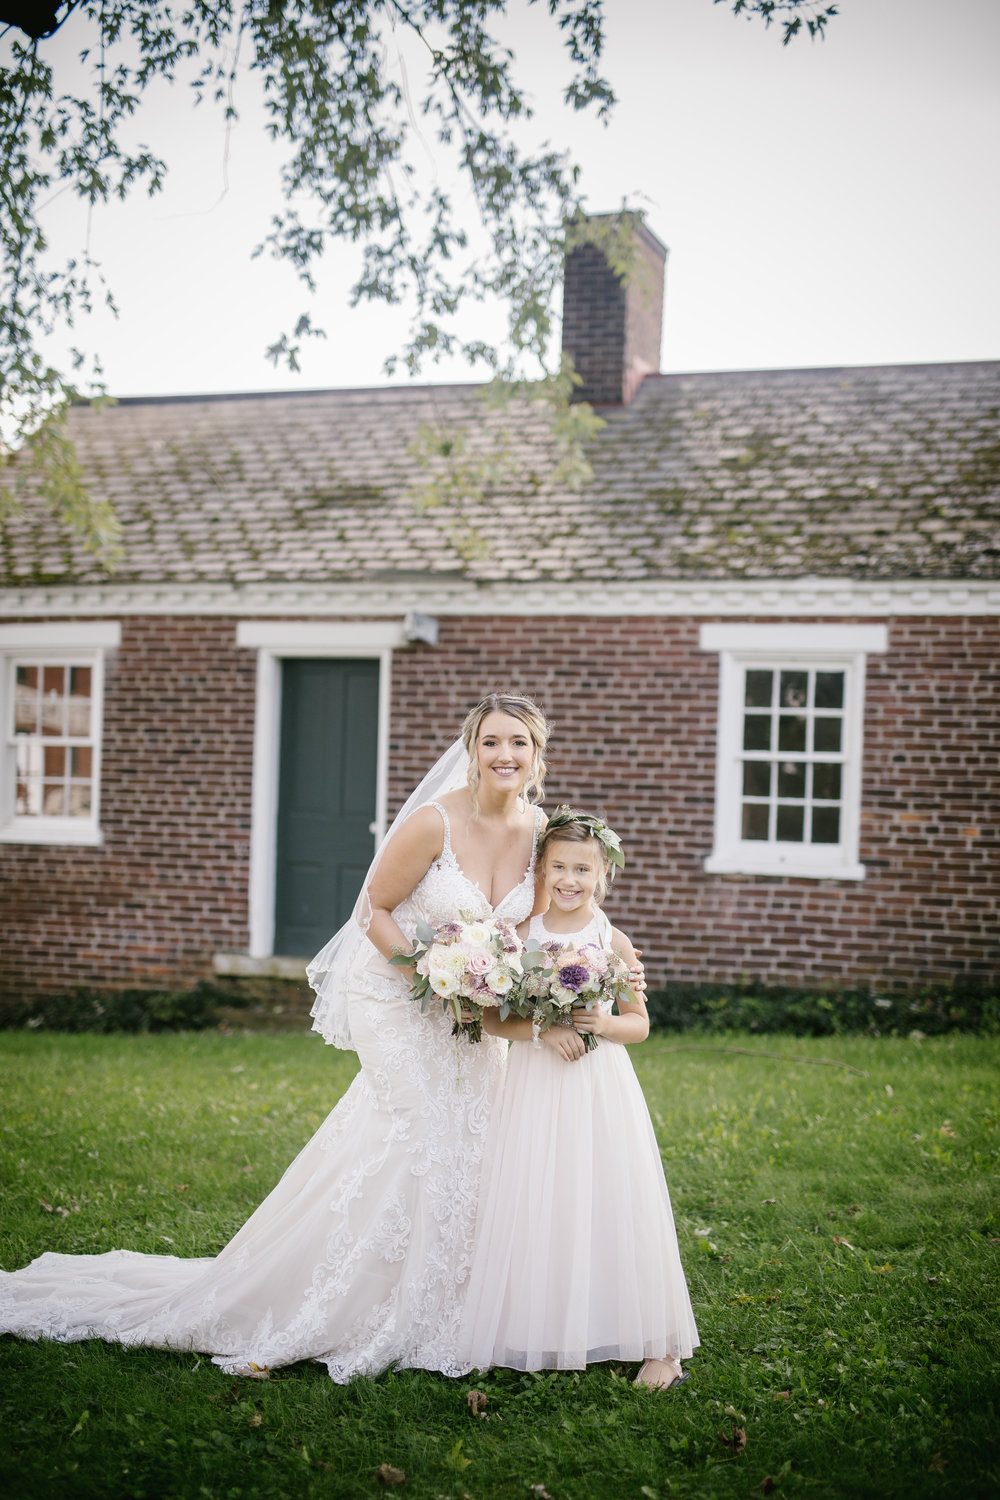 Bride poses for wedding photos in embellished lace wedding dress with flower girl for rustic wedding in Pittsburgh, PA planned by Exhale Events. Find more wedding inspiration at exhale-events.com!